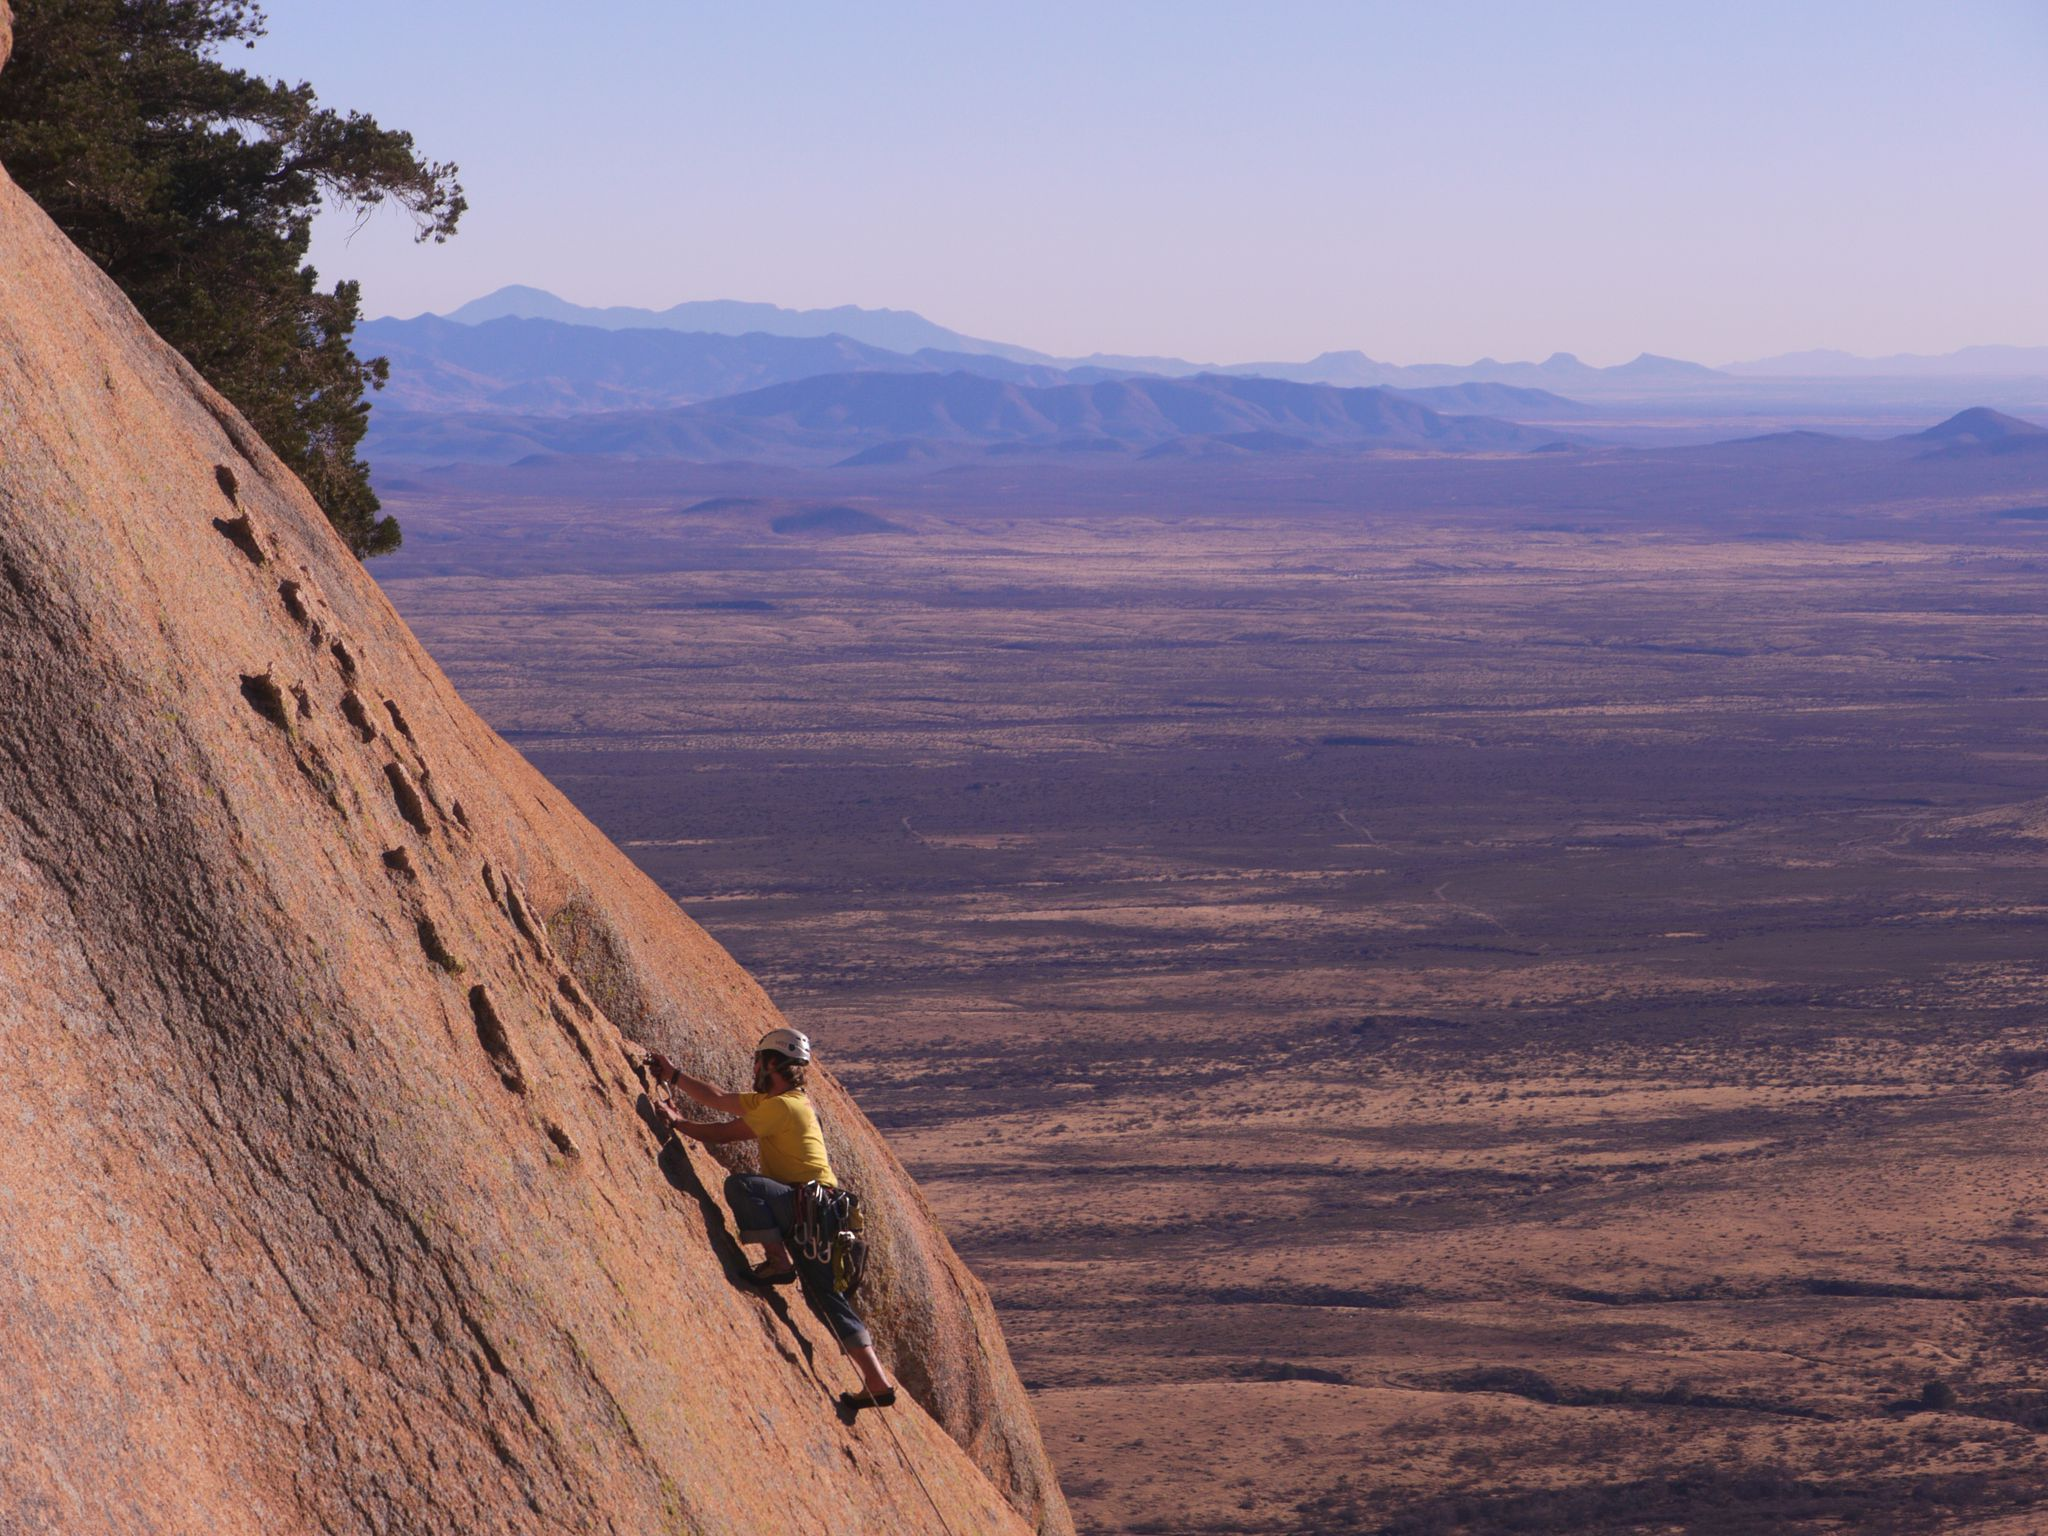 Gap Year Program - NOLS Fall Semester in the Southwest  4